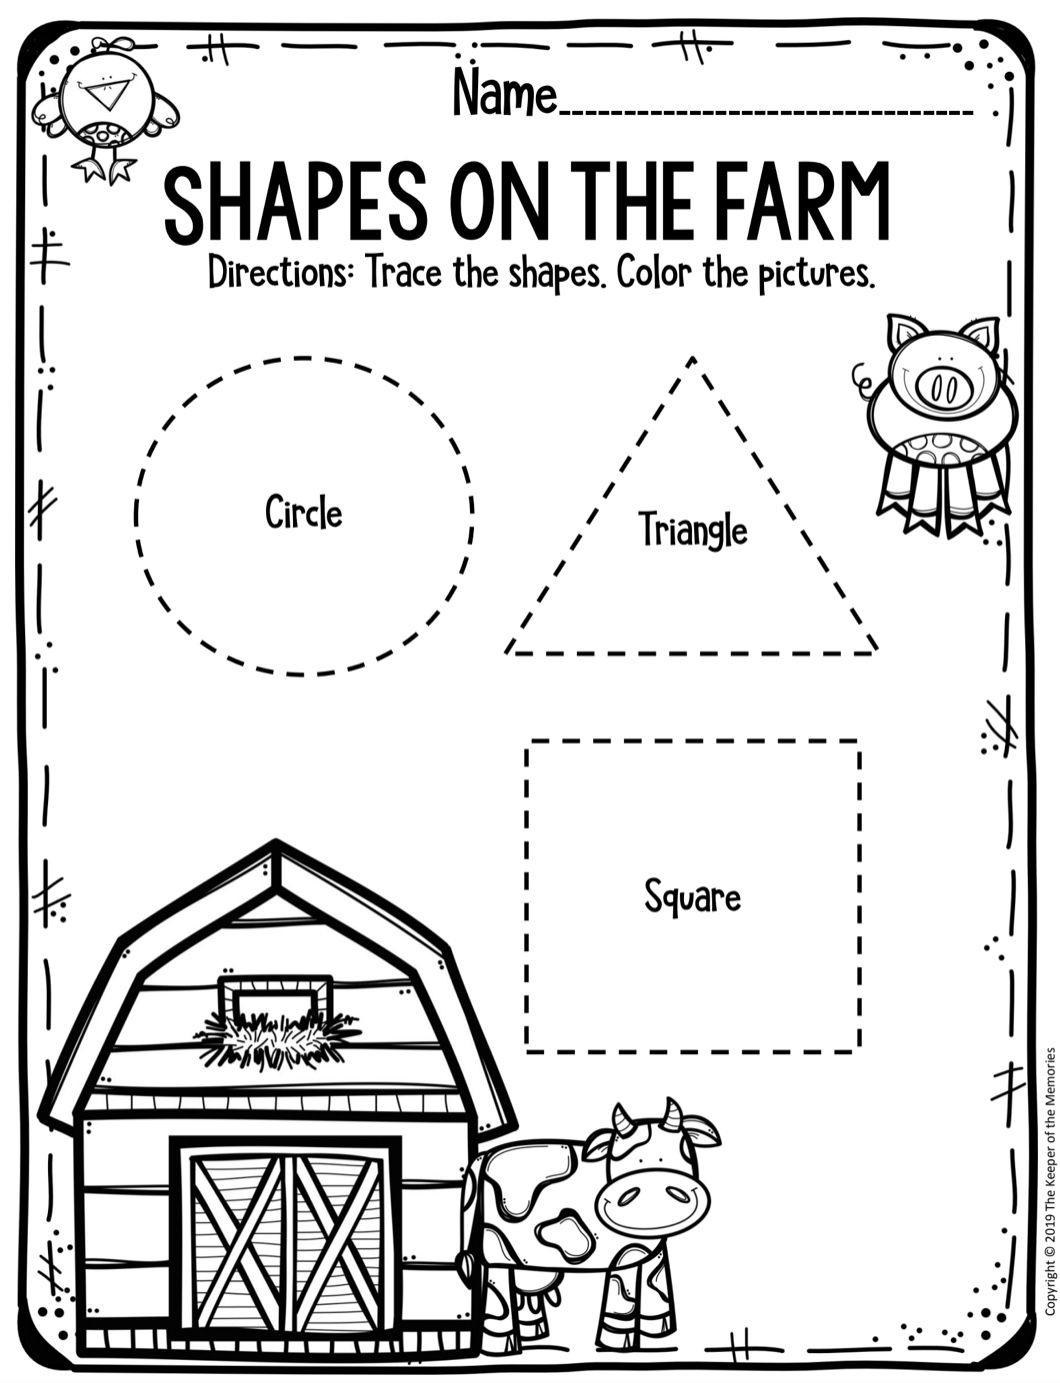 Pin On Farm Curriculum